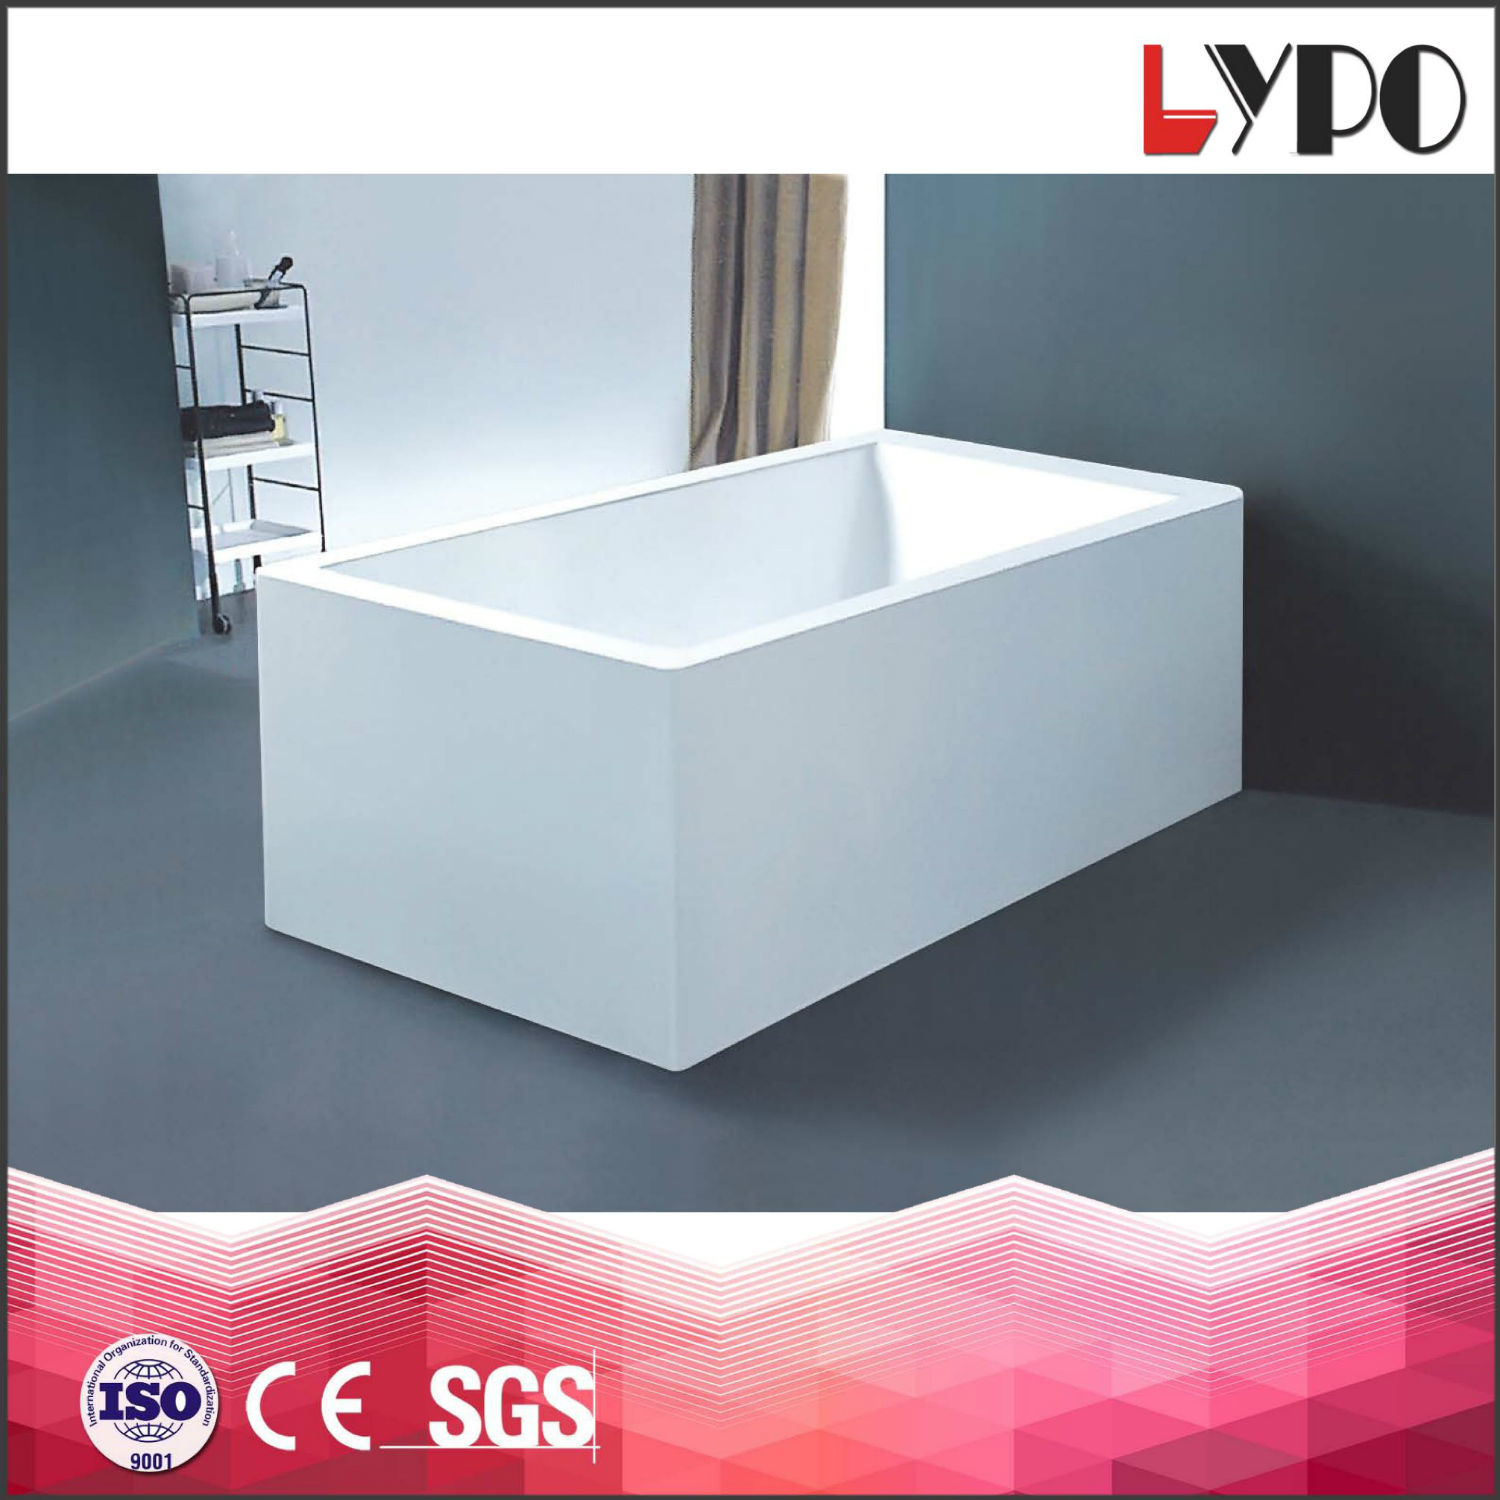 China K-8710 Square Shape Freestanding Acrylic Complete Simple ...